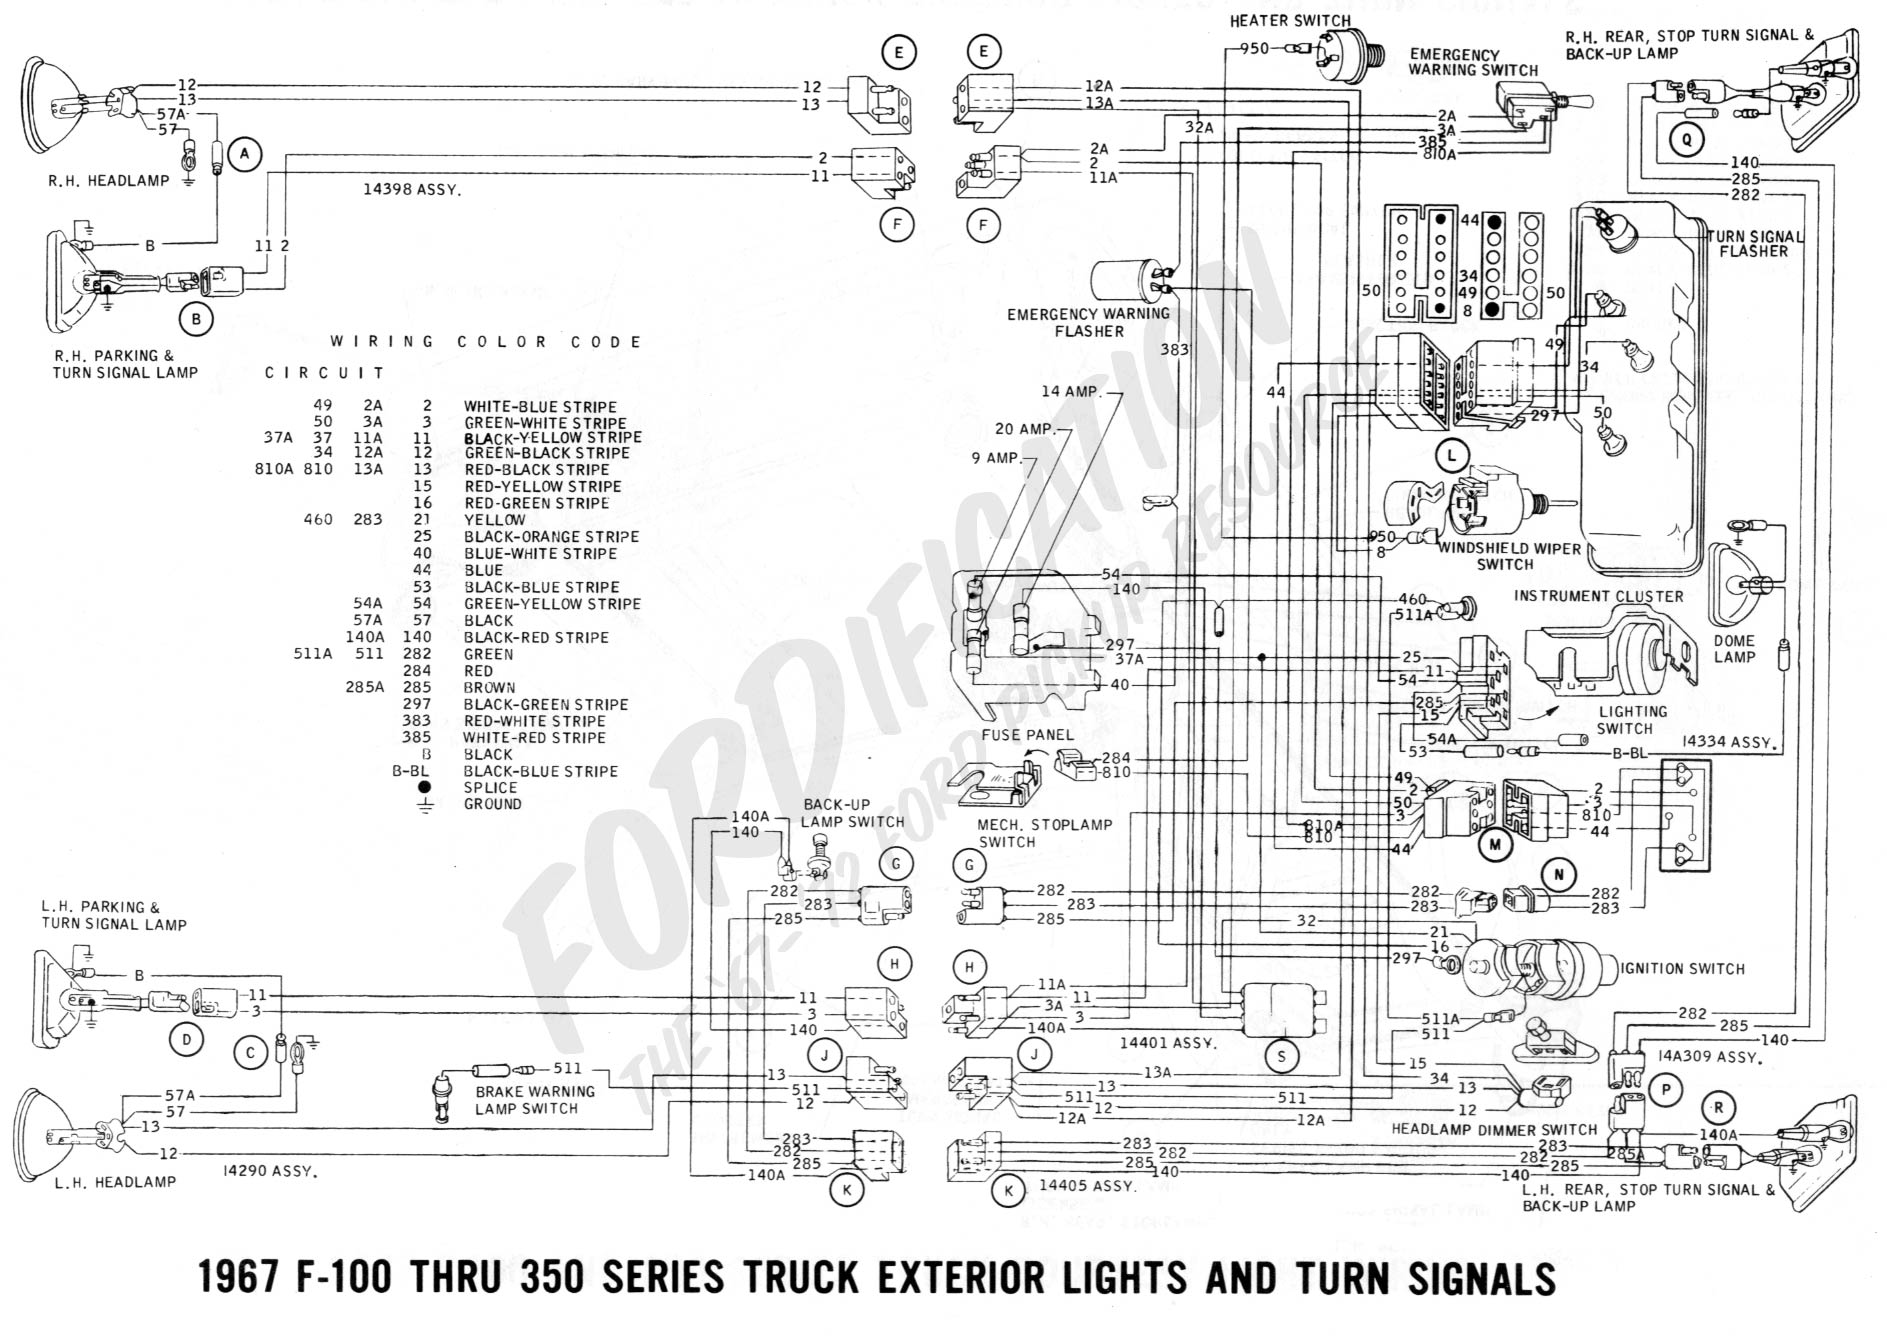 Roadrunner Wiring Diagram Private Sharing About 1970 Plymouth Satellite 1968 Dash Light Schematics Diagrams U2022 Rh Seniorlivinguniversity Co 1969